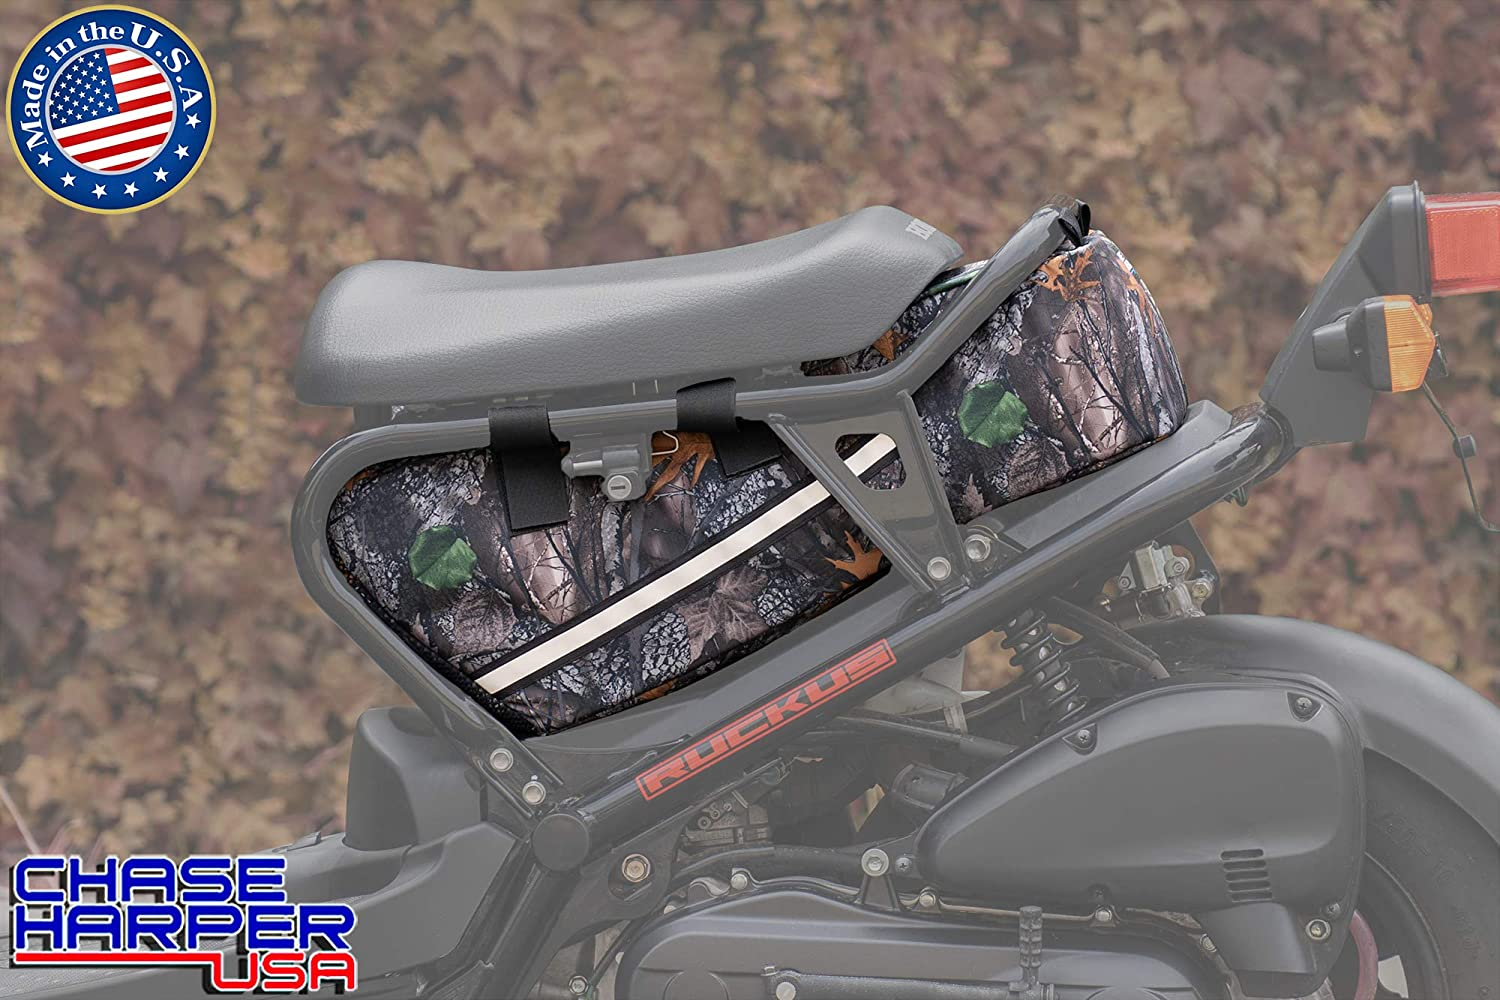 23 Liters of Storage Backwoods Camo Water-Resistant Industrial Grade Ballistic Nylon with Hook and Loop Secure Straps Chase Harper USA 5000 Ruckus Under the Seat Bag Tear-Resistant